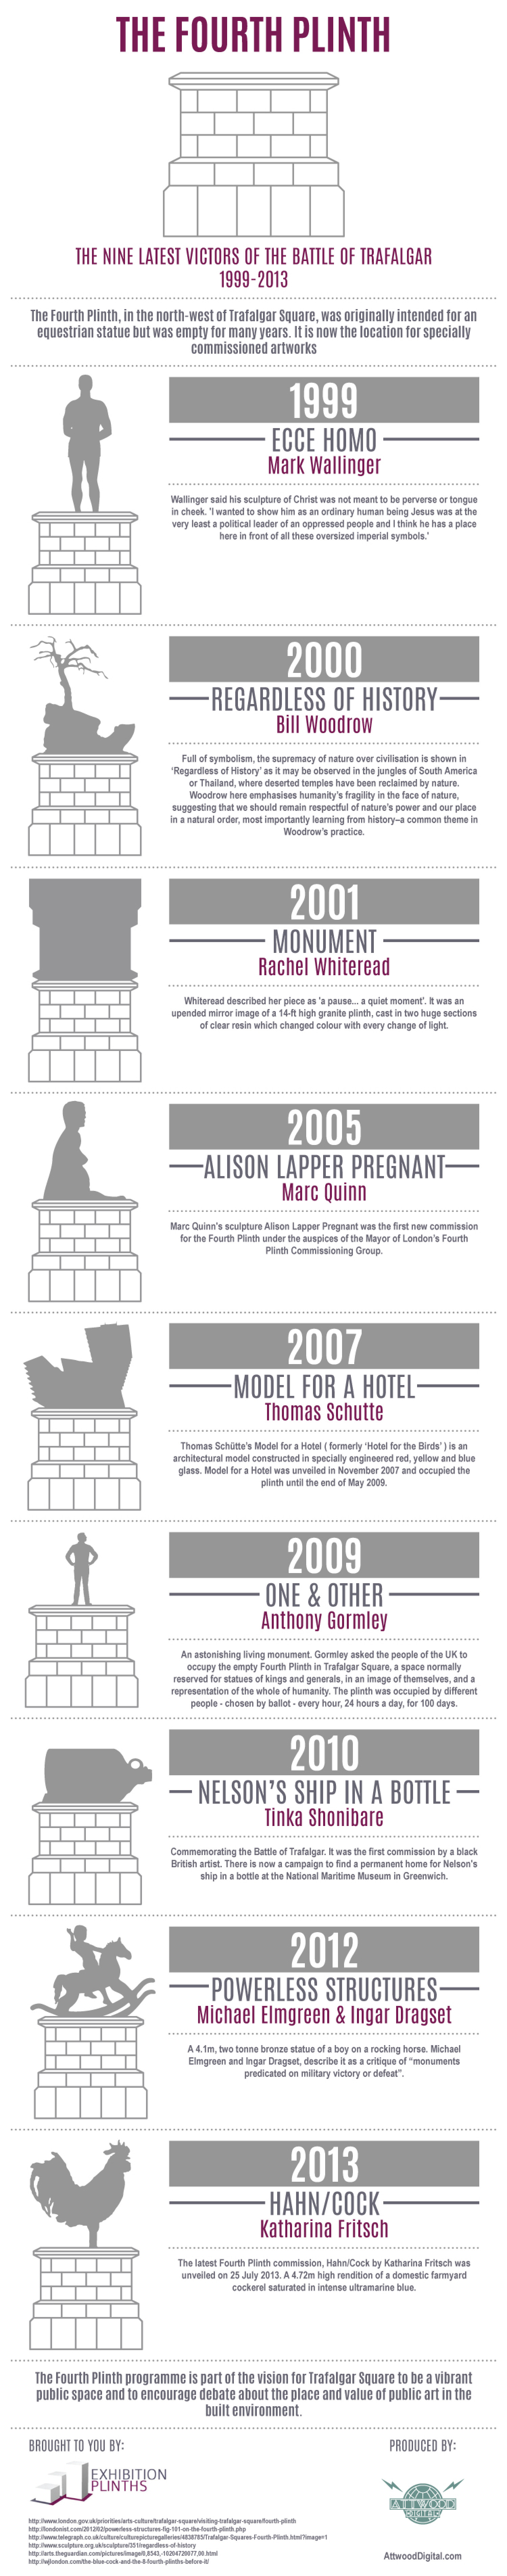 The Fourth Plinth Infographic